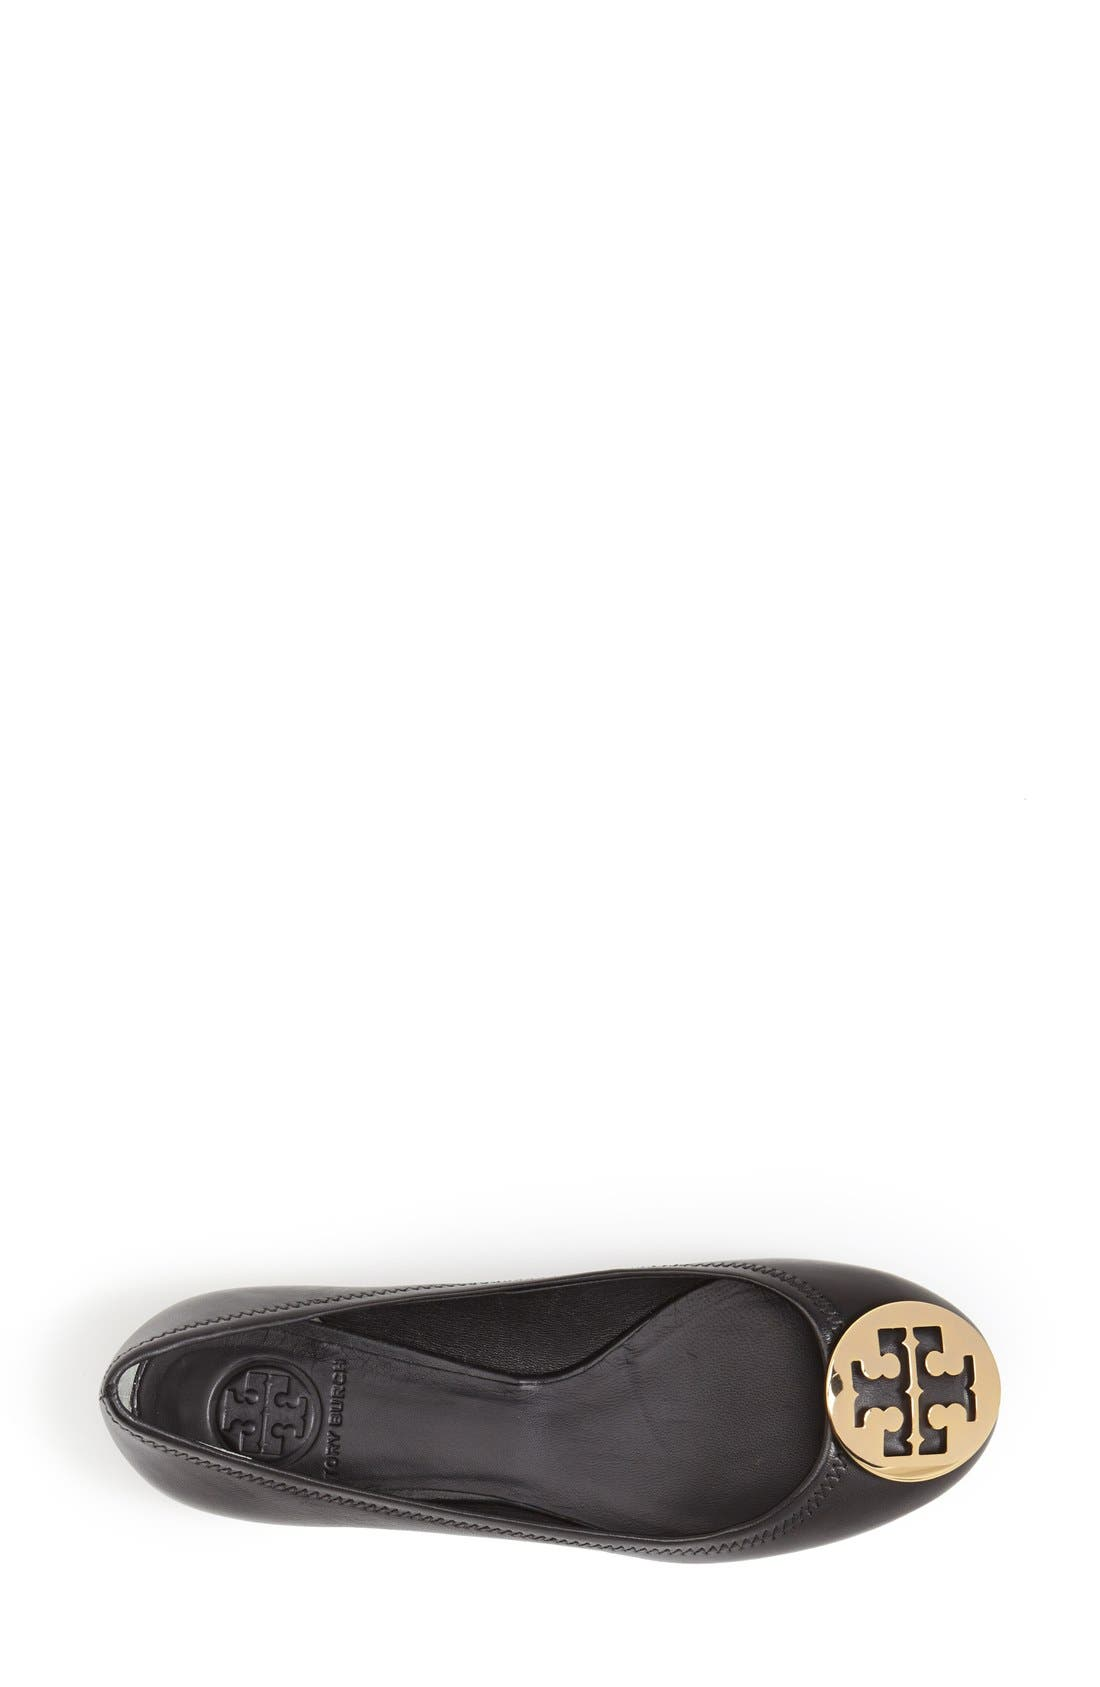 Alternate Image 3  - Tory Burch 'Reva' Ballerina Flat (Women)